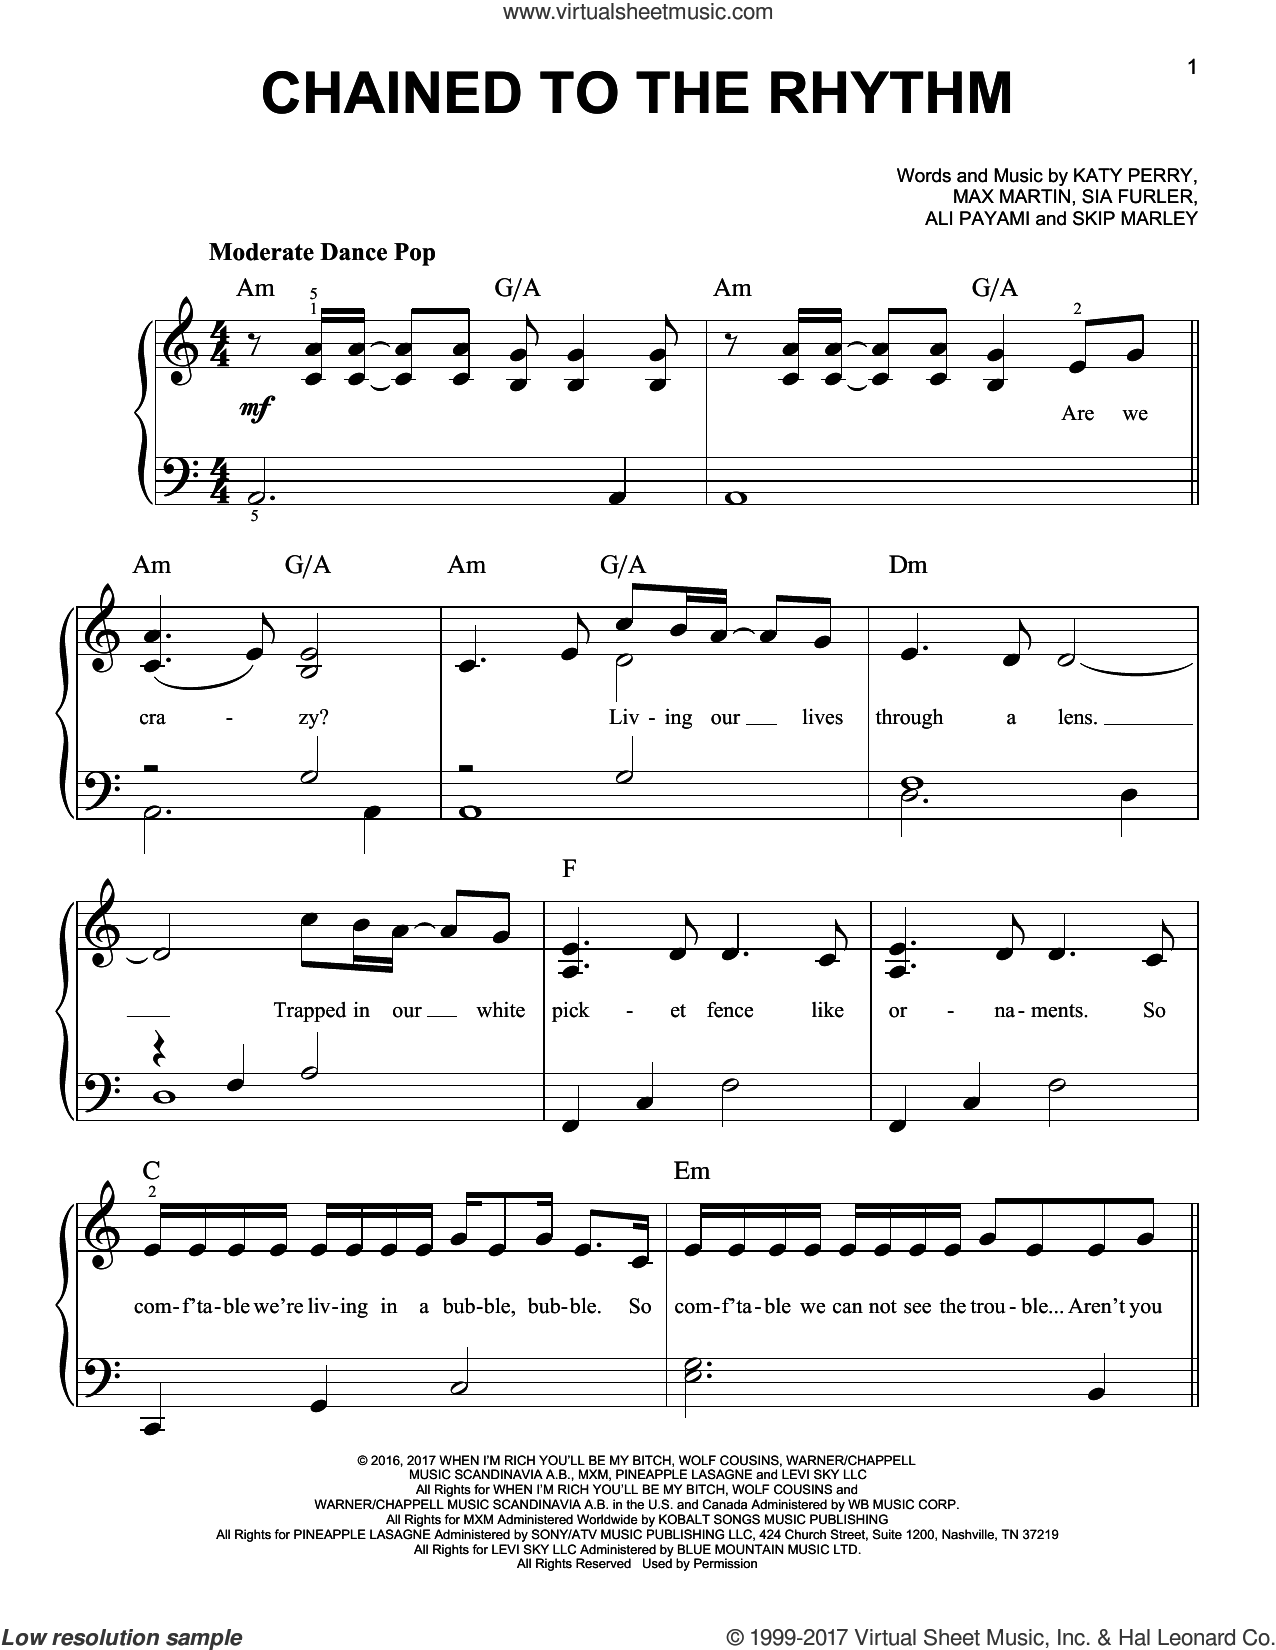 Chained To The Rhythm sheet music for piano solo by Katy Perry, Ali Payami, Max Martin, Sia Furler and Skip Marley, easy skill level